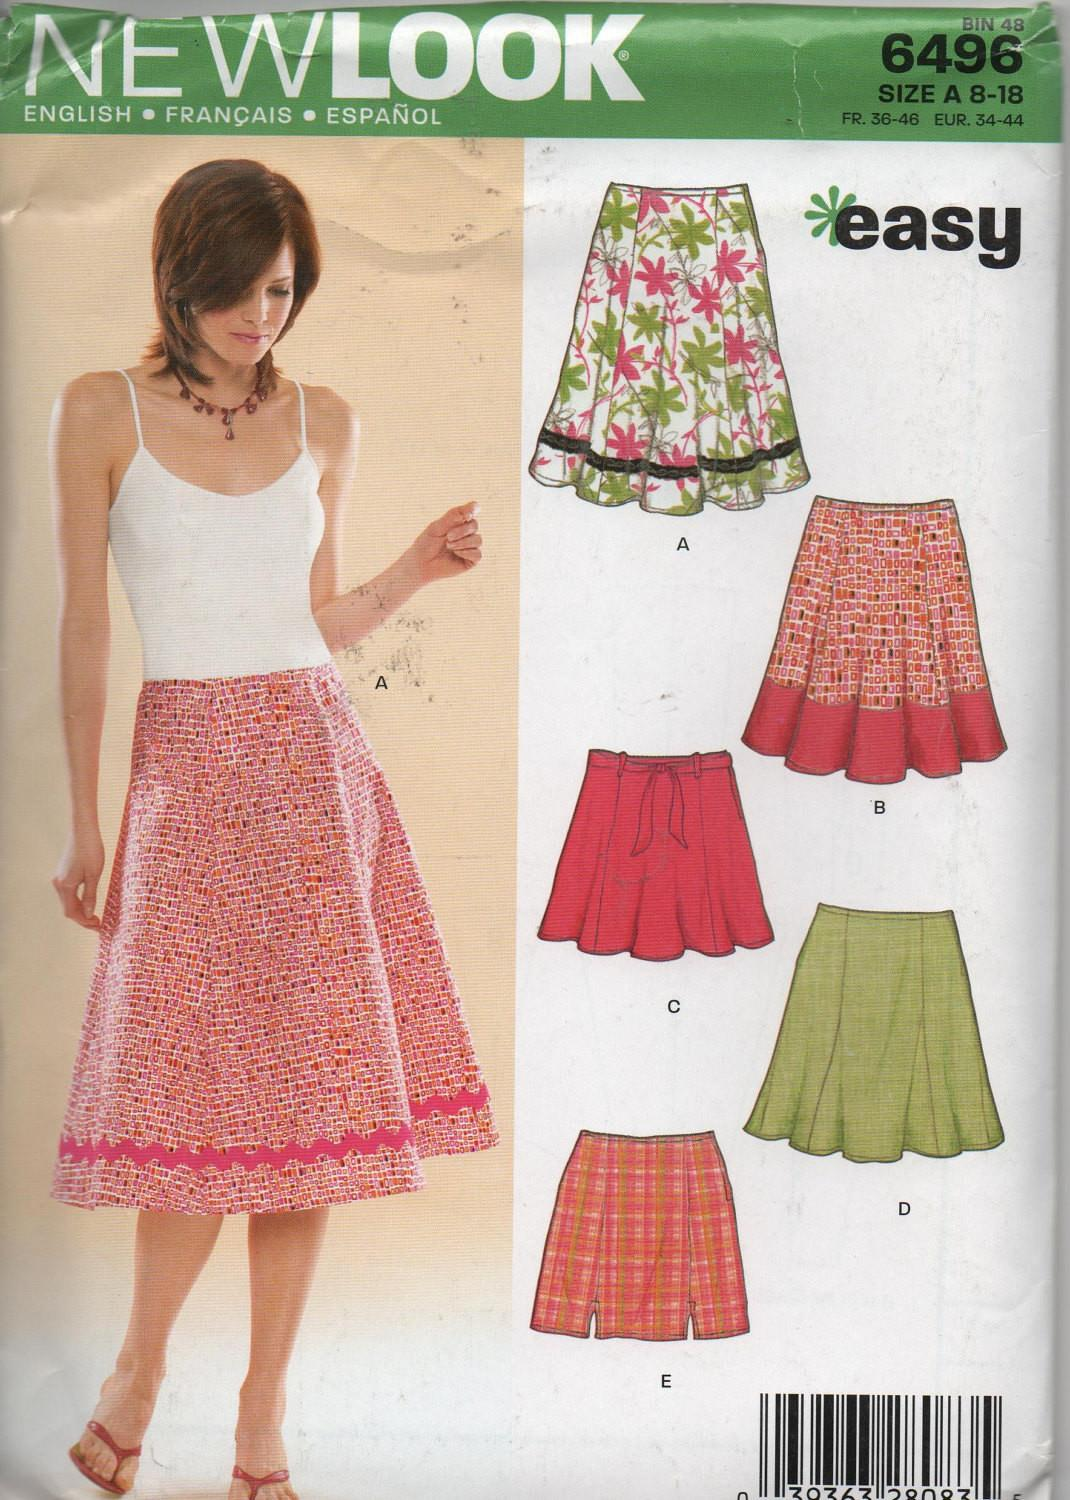 Easy Skirt Pattern New Look Sizes English French Spanish